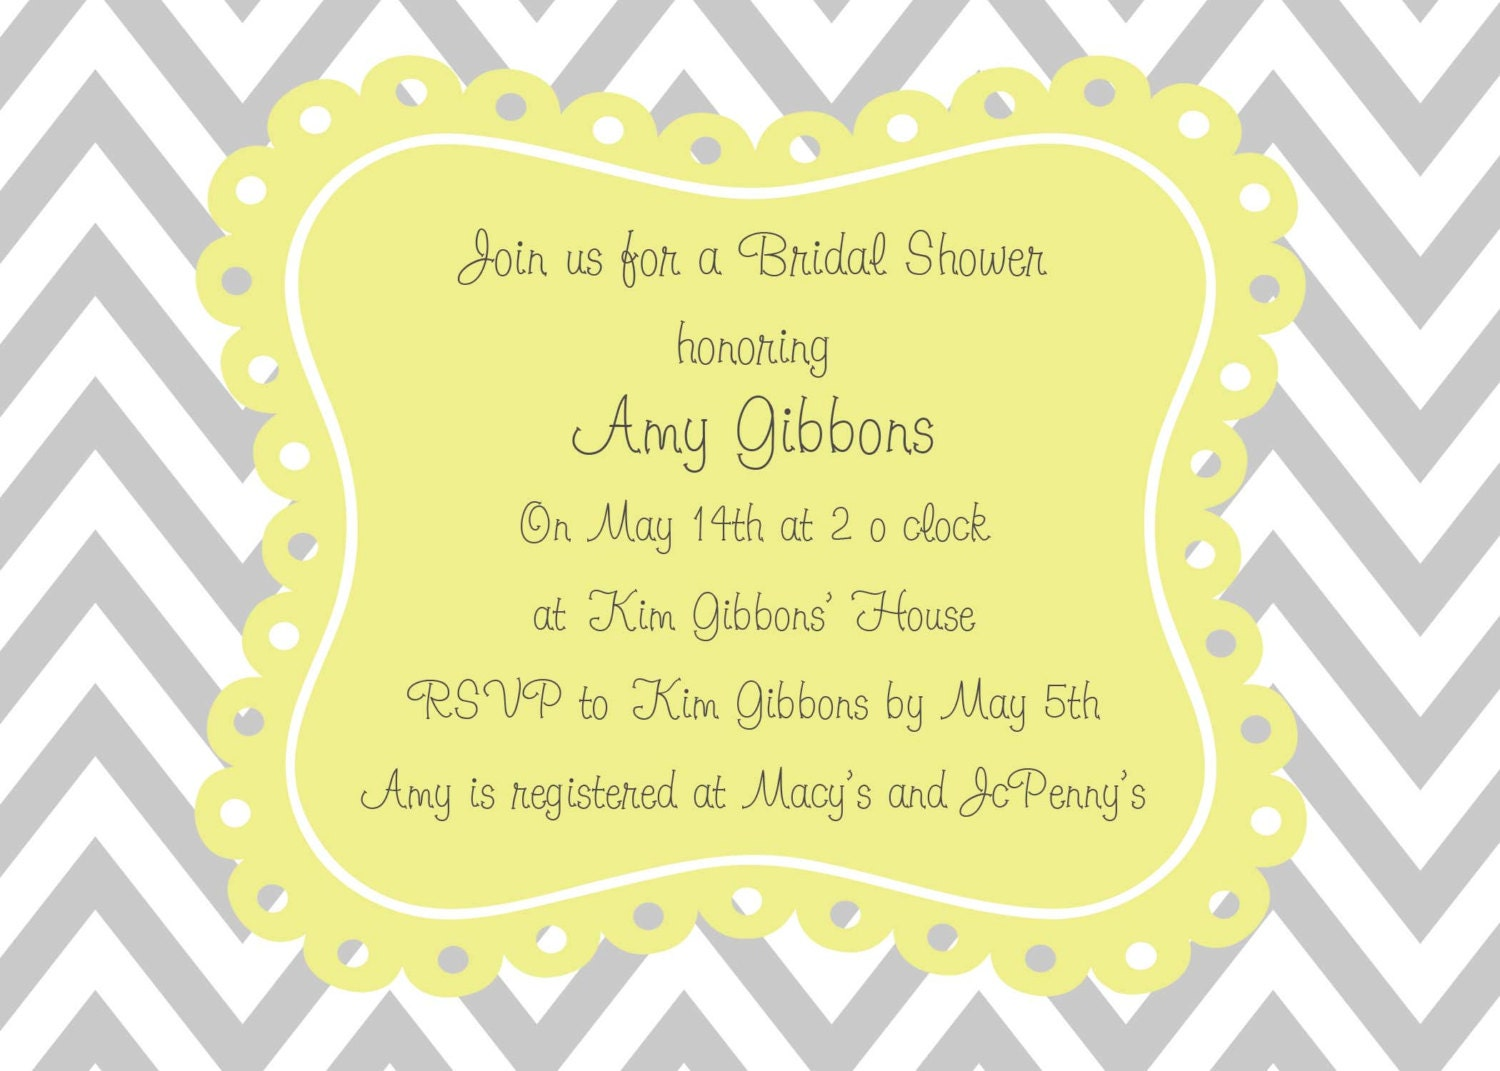 Wedding Shower Gift Card Verses : Gift Registry Wedding Invitation Wording Wedding Invitations Ideas